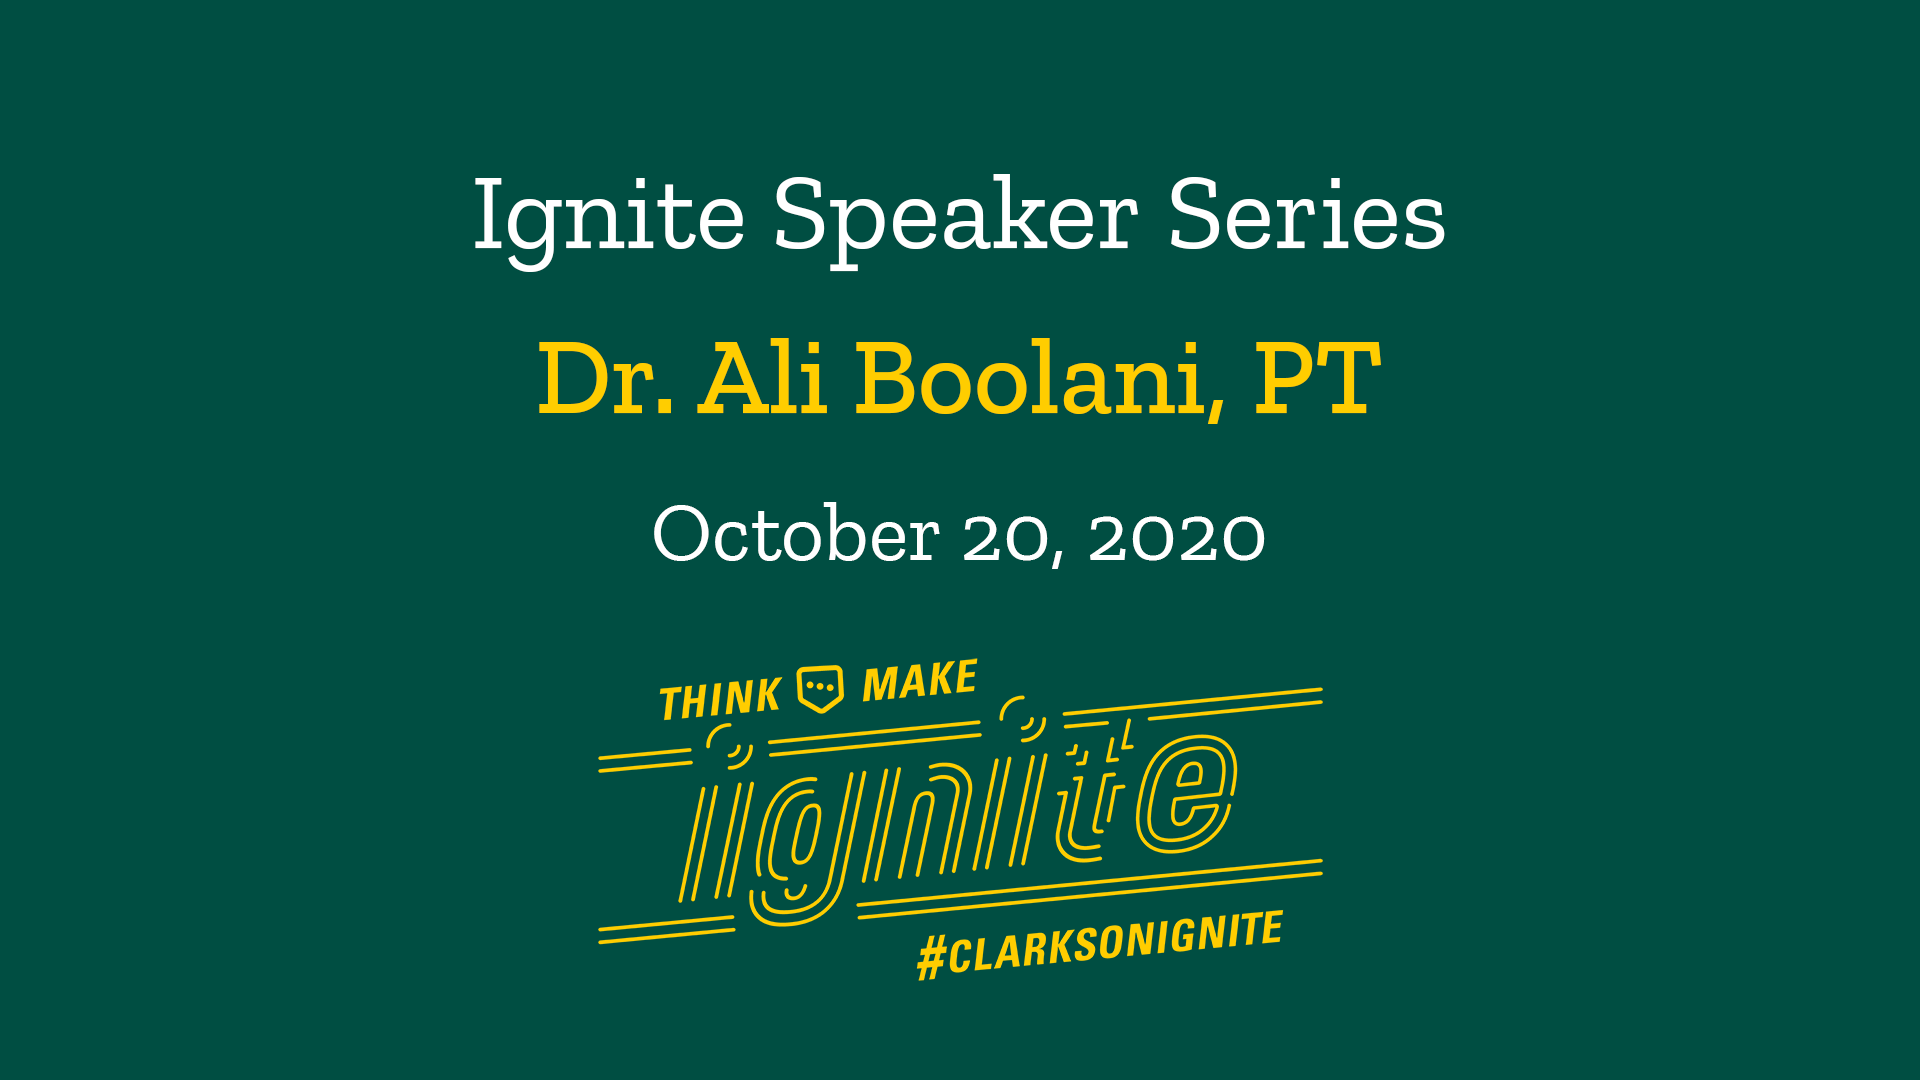 Ignite Speaker Series – October 20, 2020 2 PM